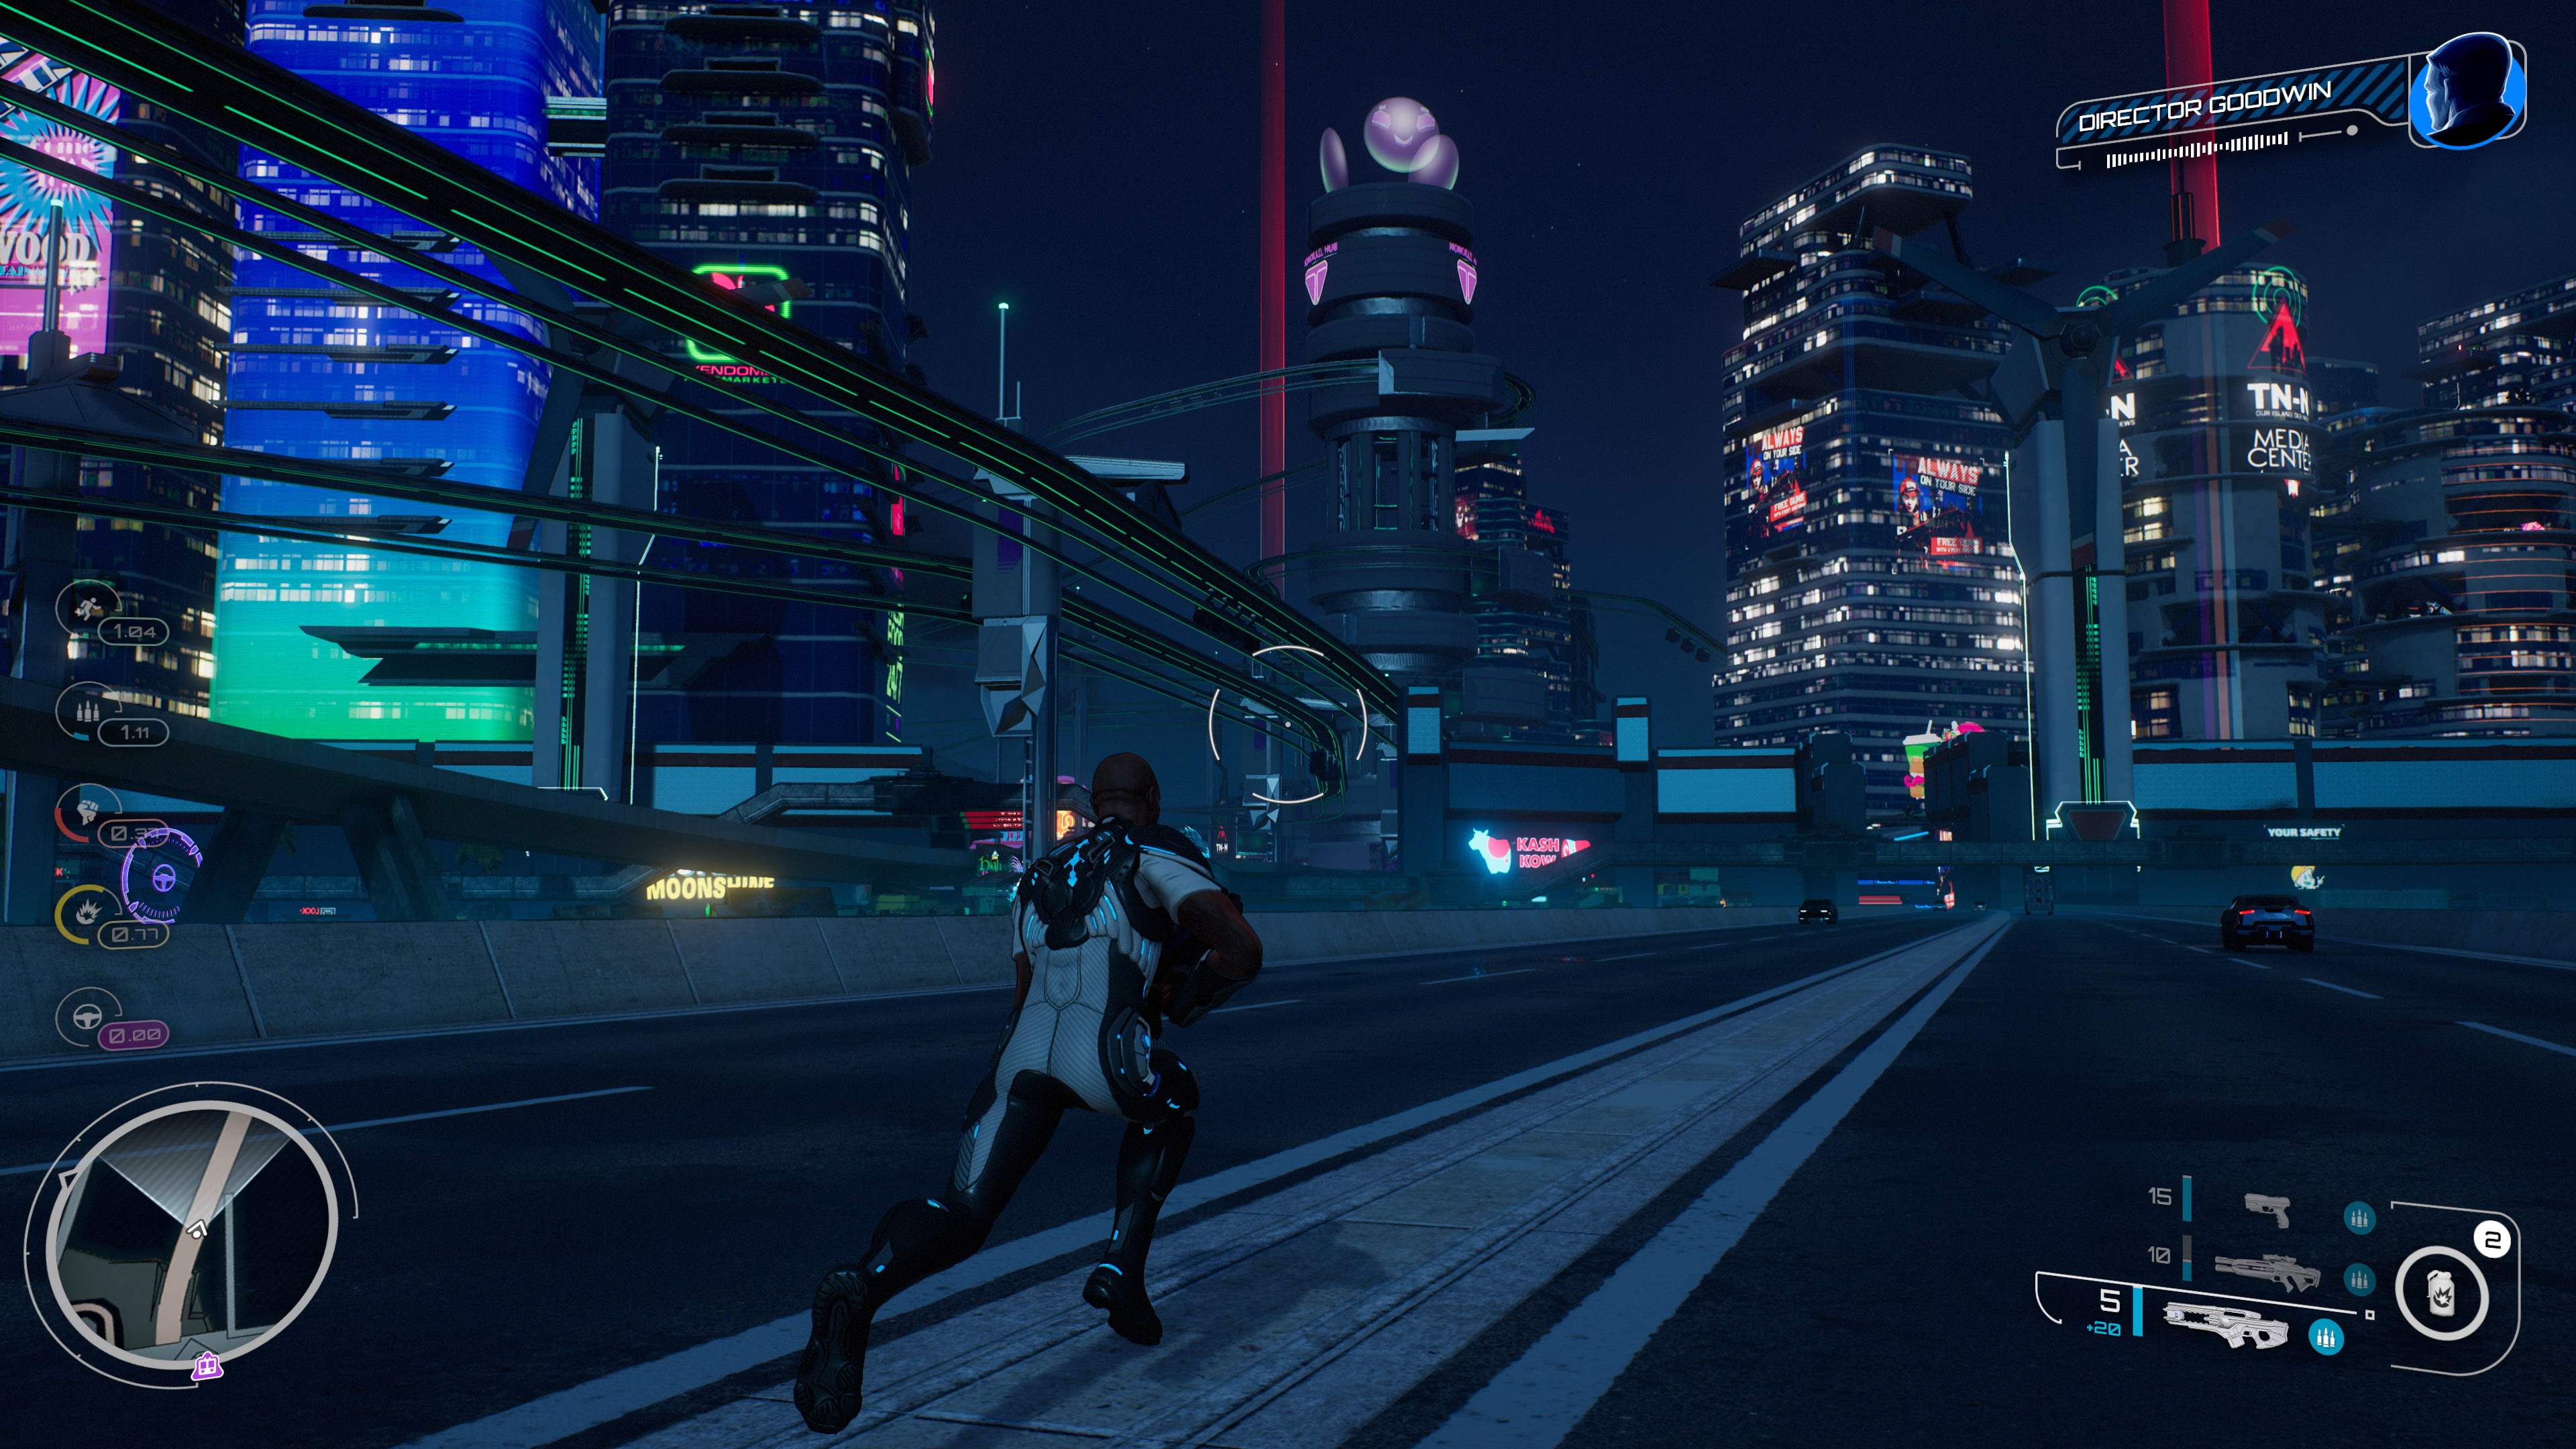 crackdown 3 justice has been served stuck at 99